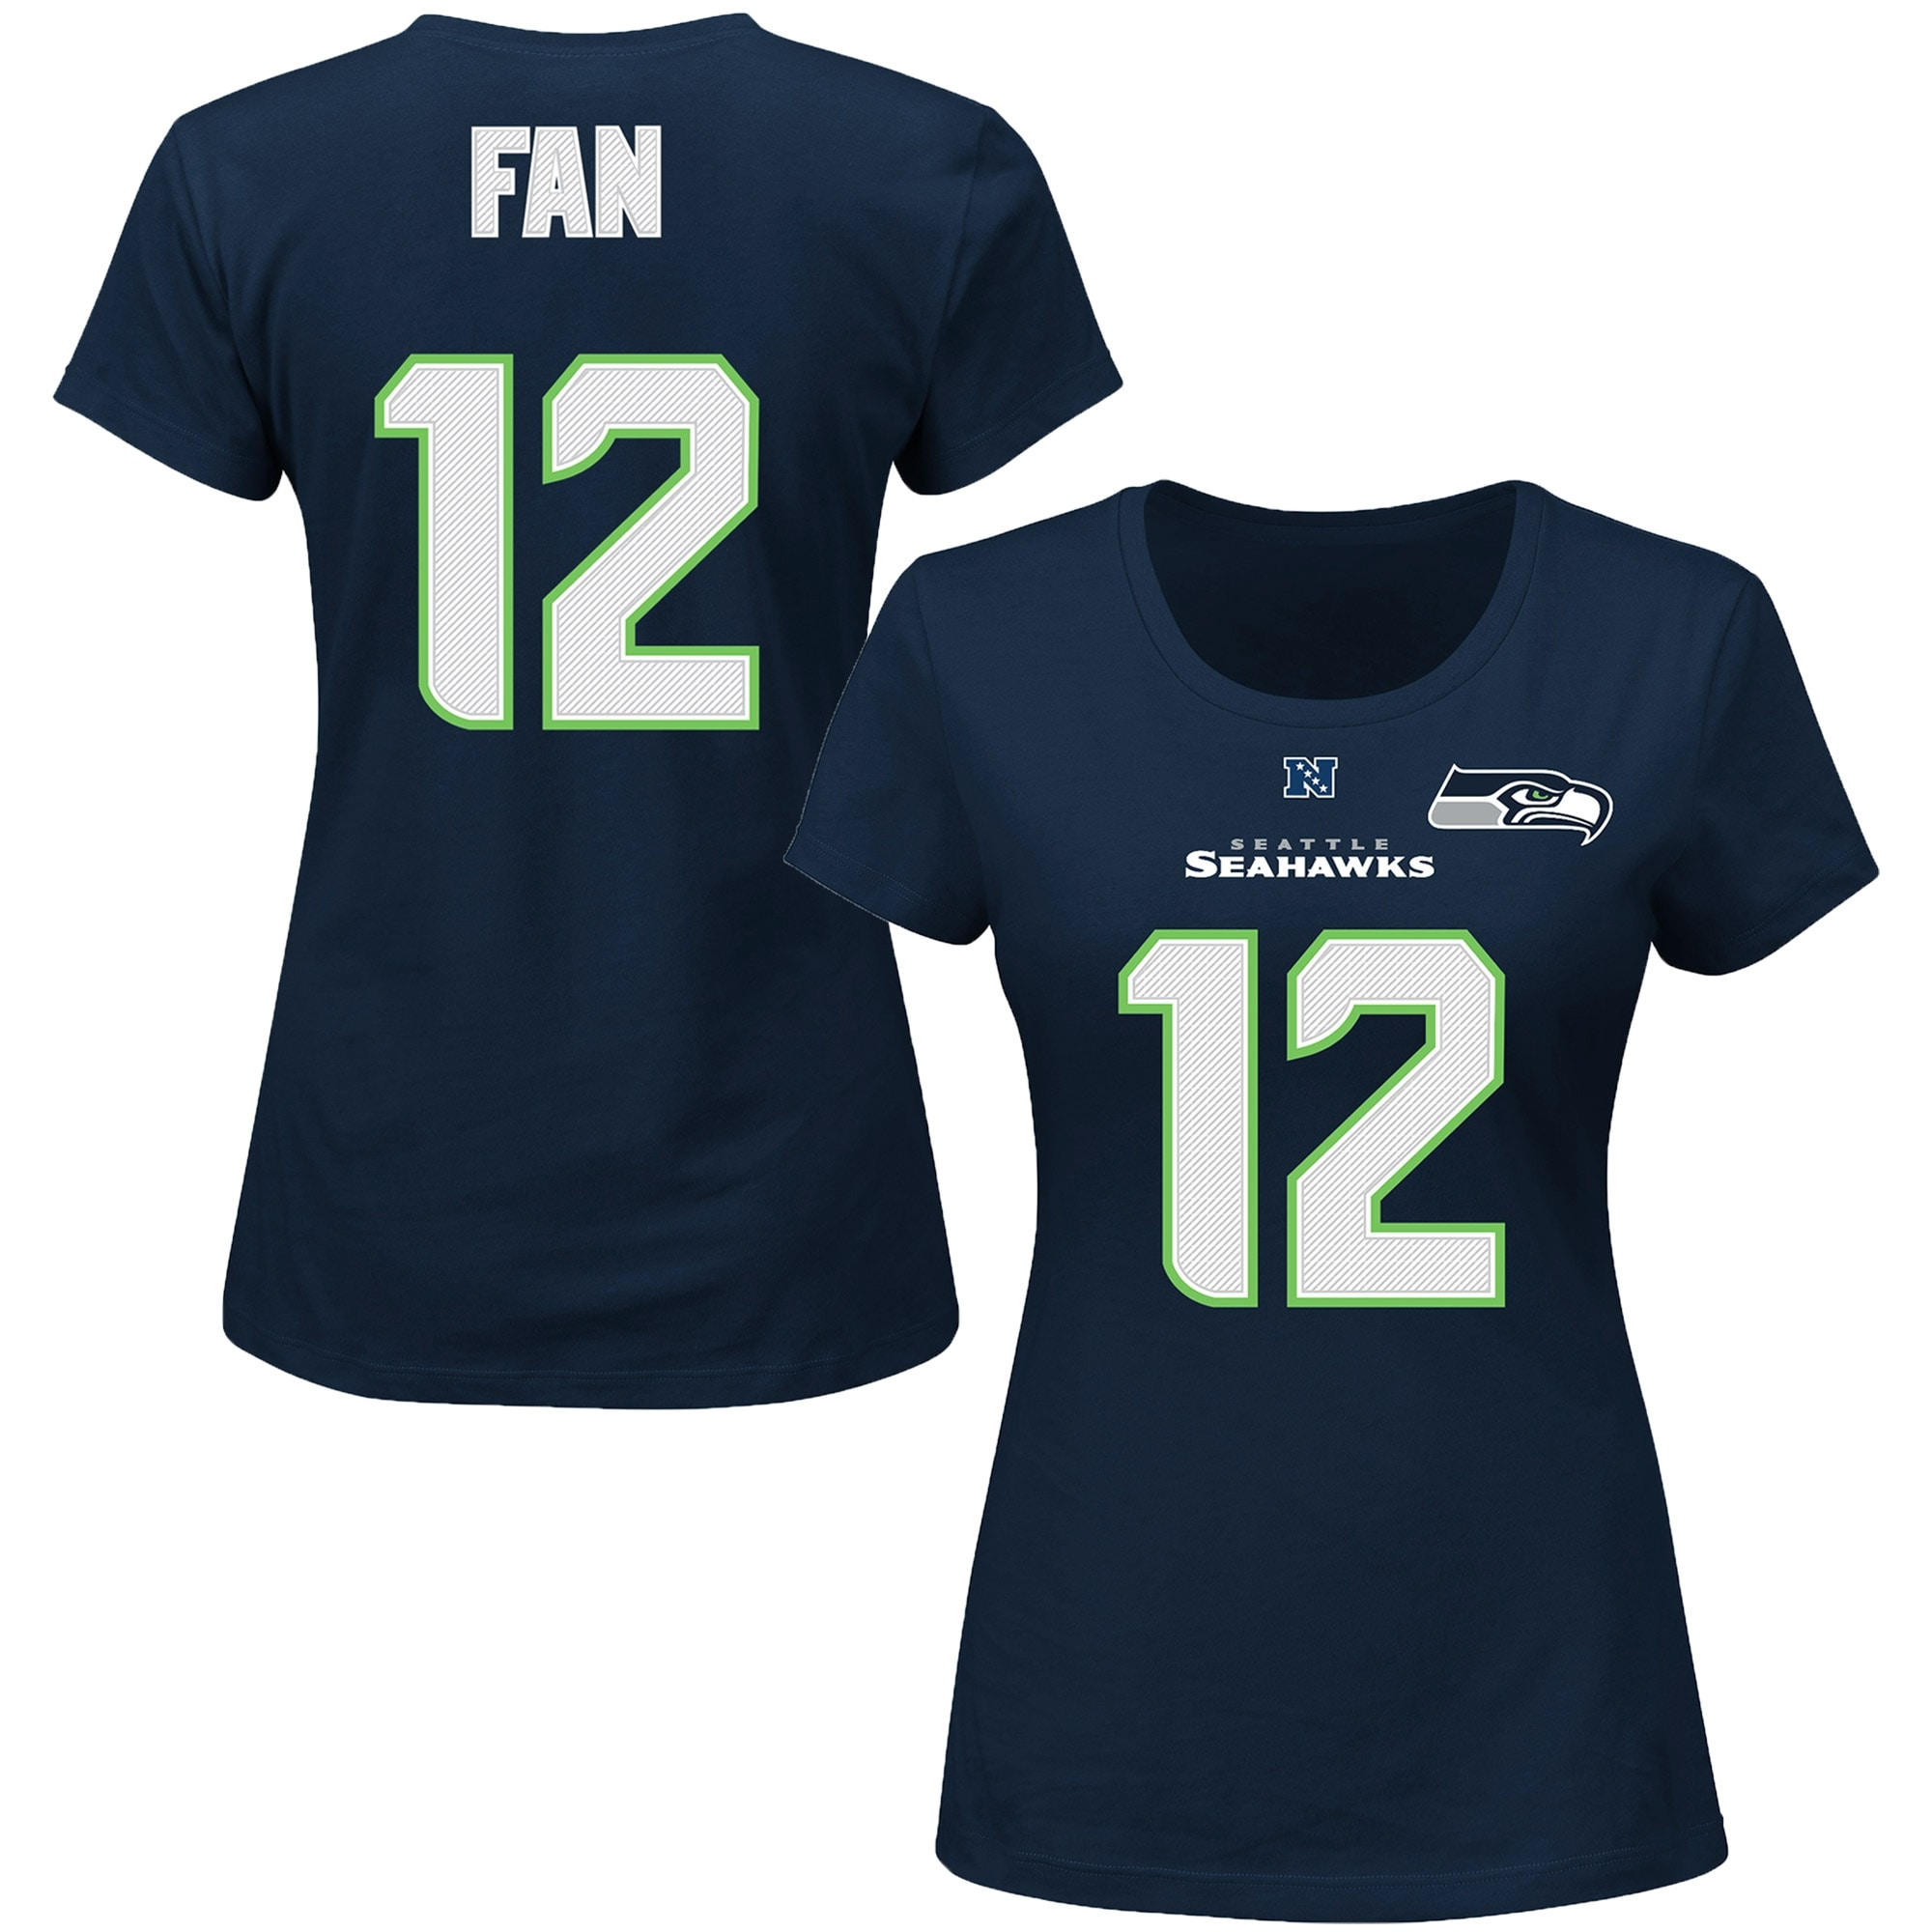 12s Seattle Seahawks Majestic Women's Plus Size Fair Catch Name & Number T-Shirt - College Navy